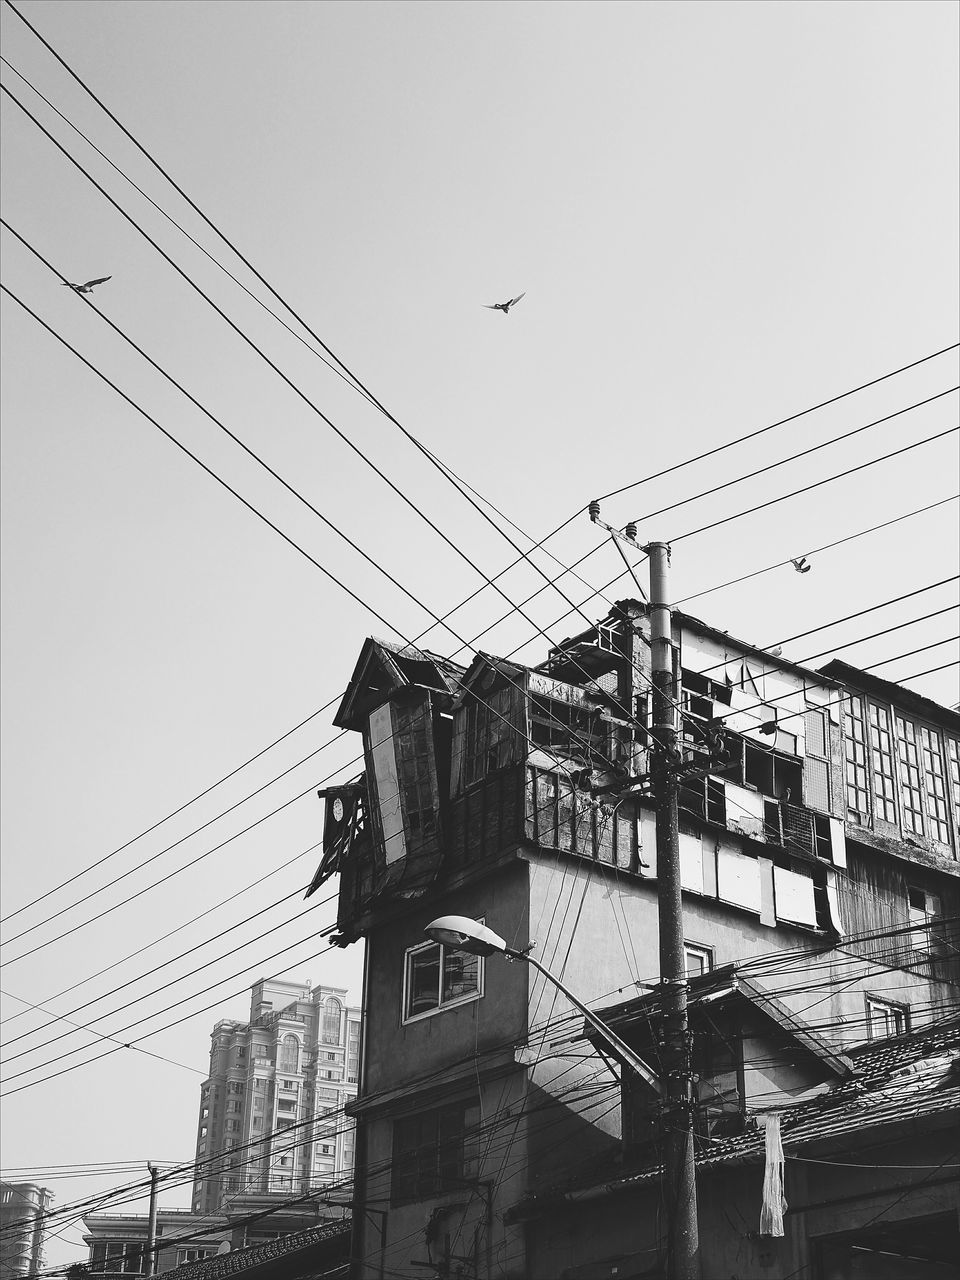 cable, power line, connection, power supply, low angle view, electricity pylon, architecture, electricity, built structure, clear sky, building exterior, sky, no people, day, bird, outdoors, telephone line, animal themes, technology